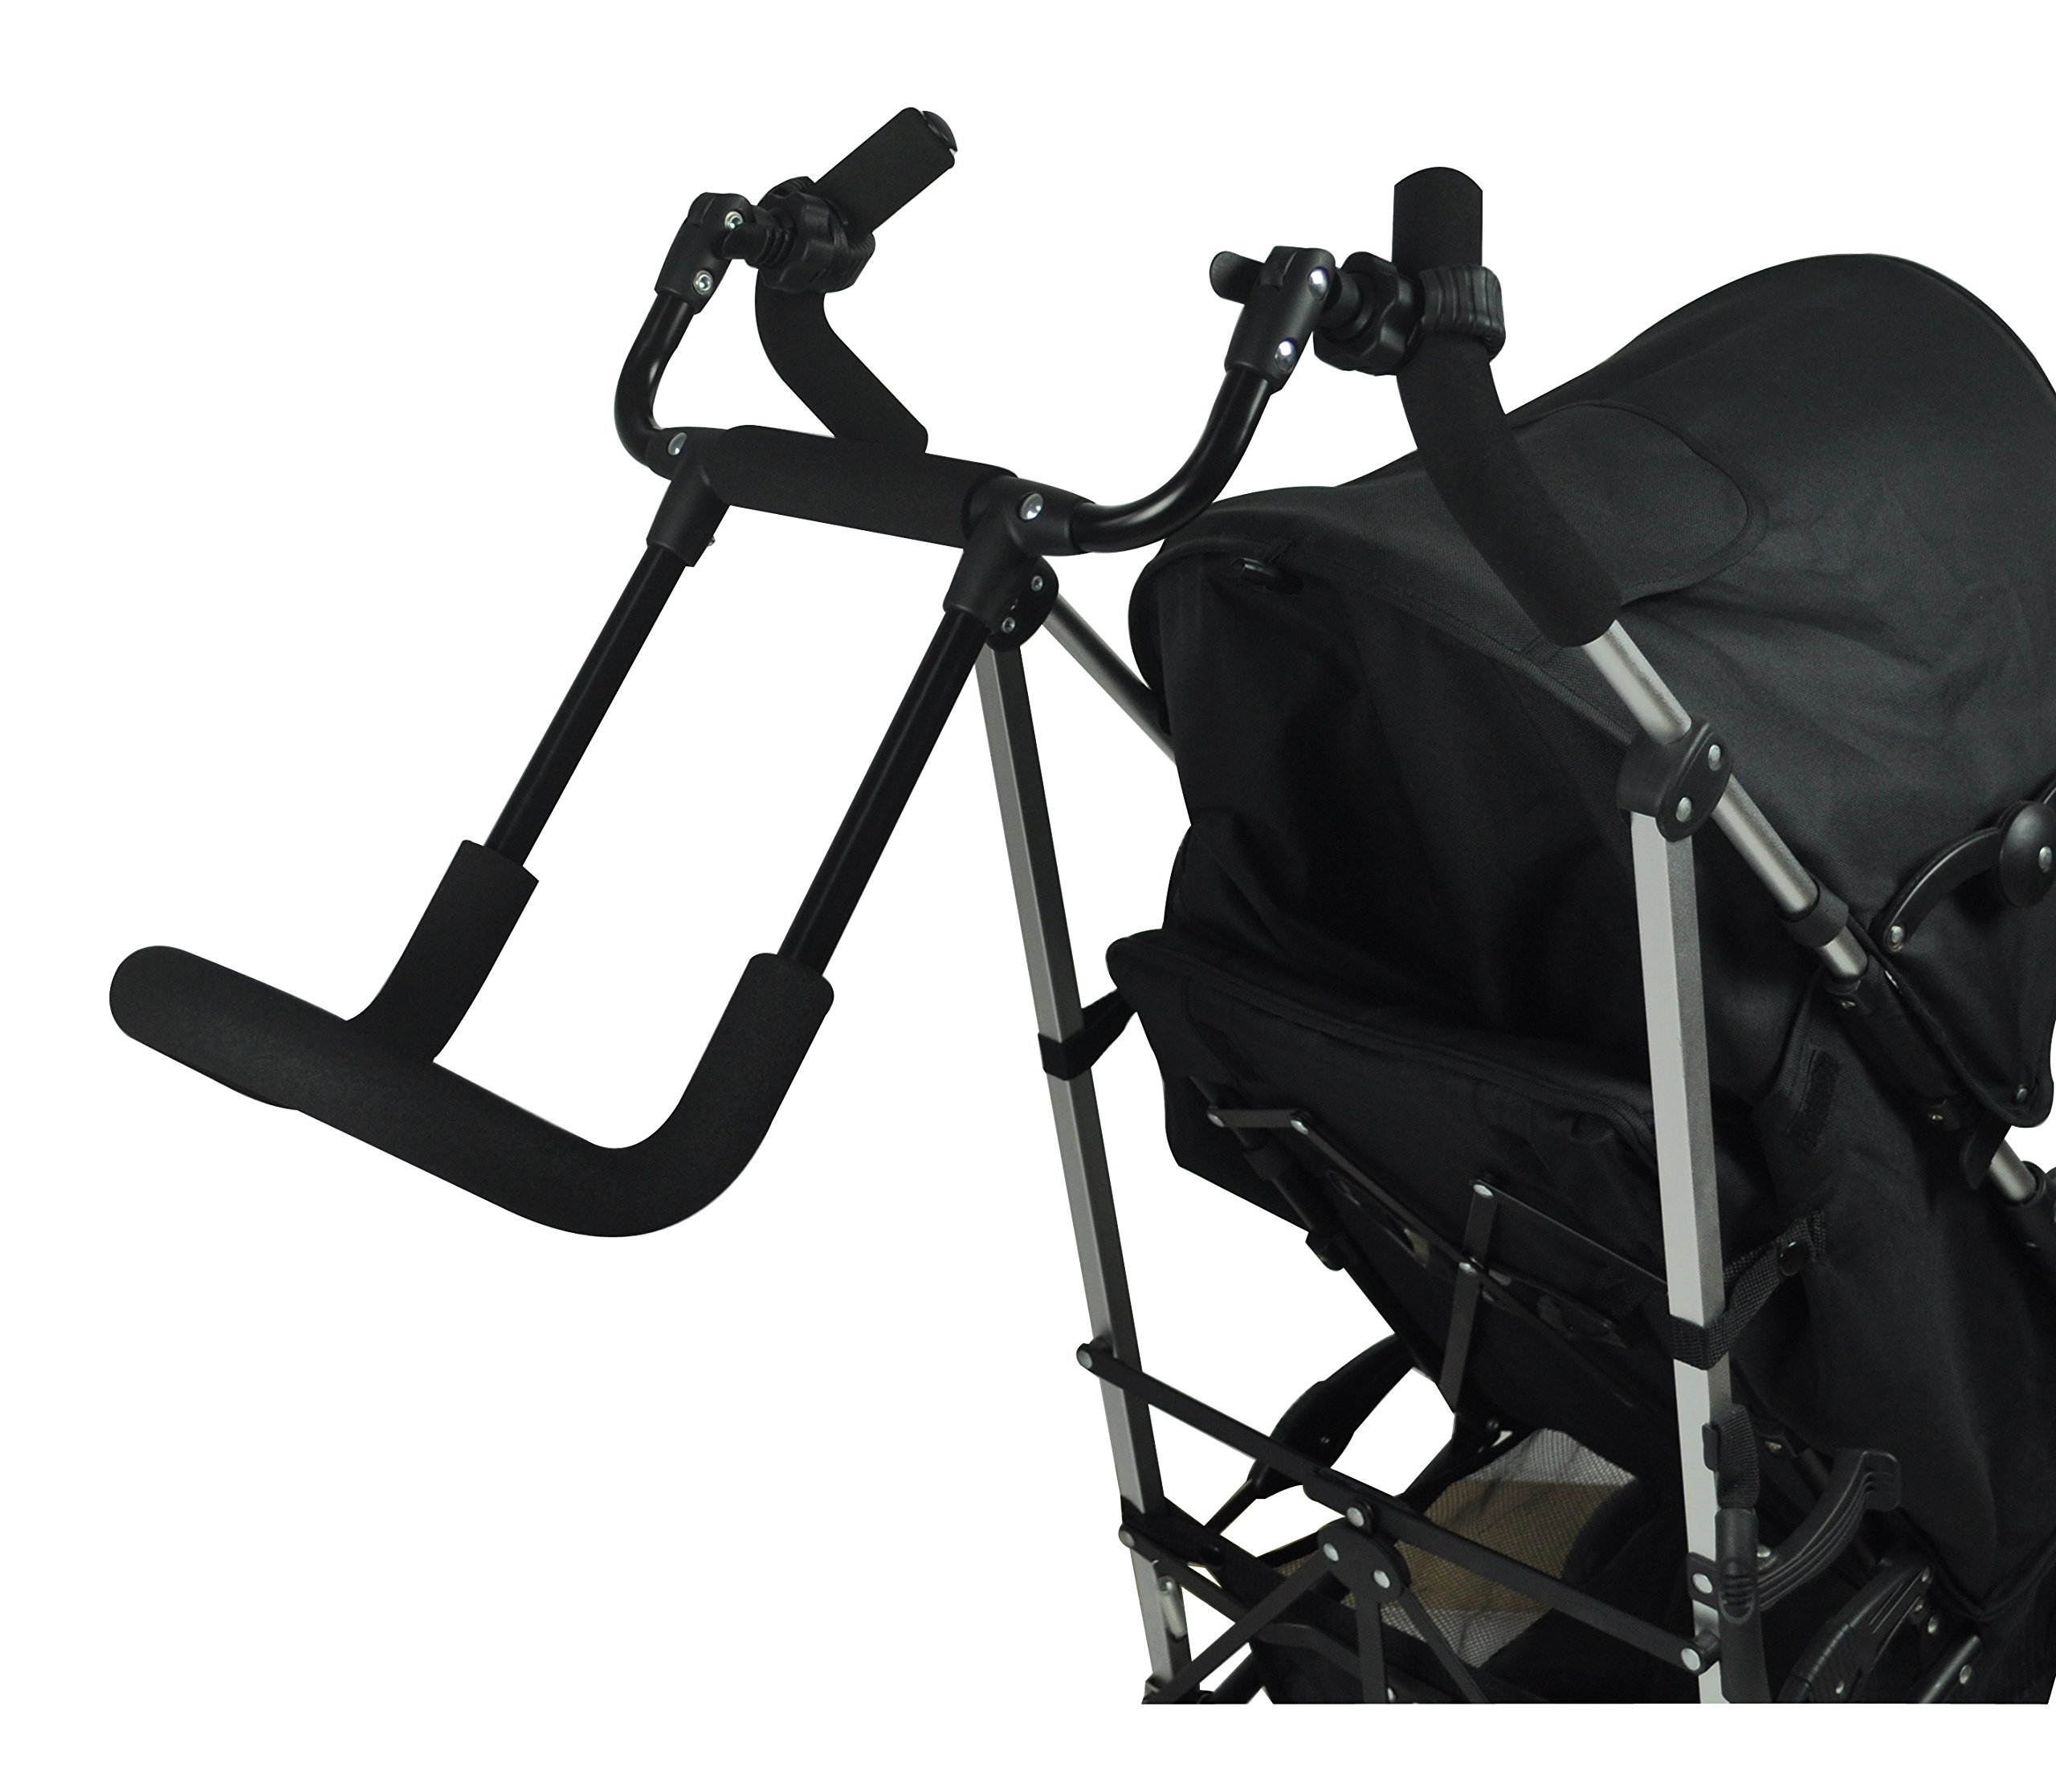 Englacha Cozy Stroll Handle Extension Bar, Black Englacha USA Universal lightweight handle extension bar (aluminum tube) can be installed on any buggy, stroller or pram without extra tools required Allows you control your stroller with just one hand and multitask with your free hand Increases extra at least 12-15 cm space for walking in the back of stroller 3